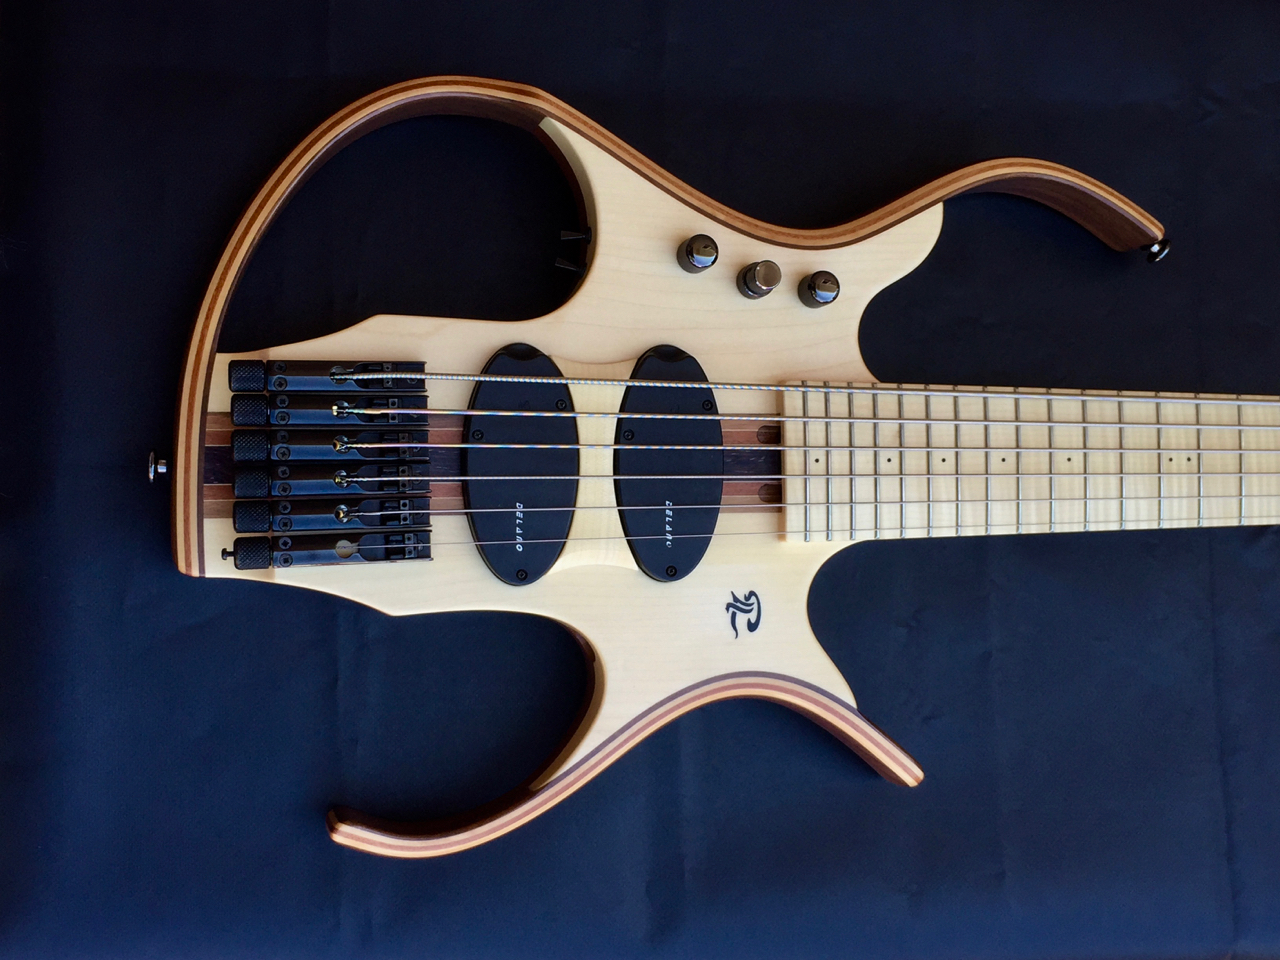 paul lairat stega 6 string electric bass guitar 32 scale luthiers access group. Black Bedroom Furniture Sets. Home Design Ideas